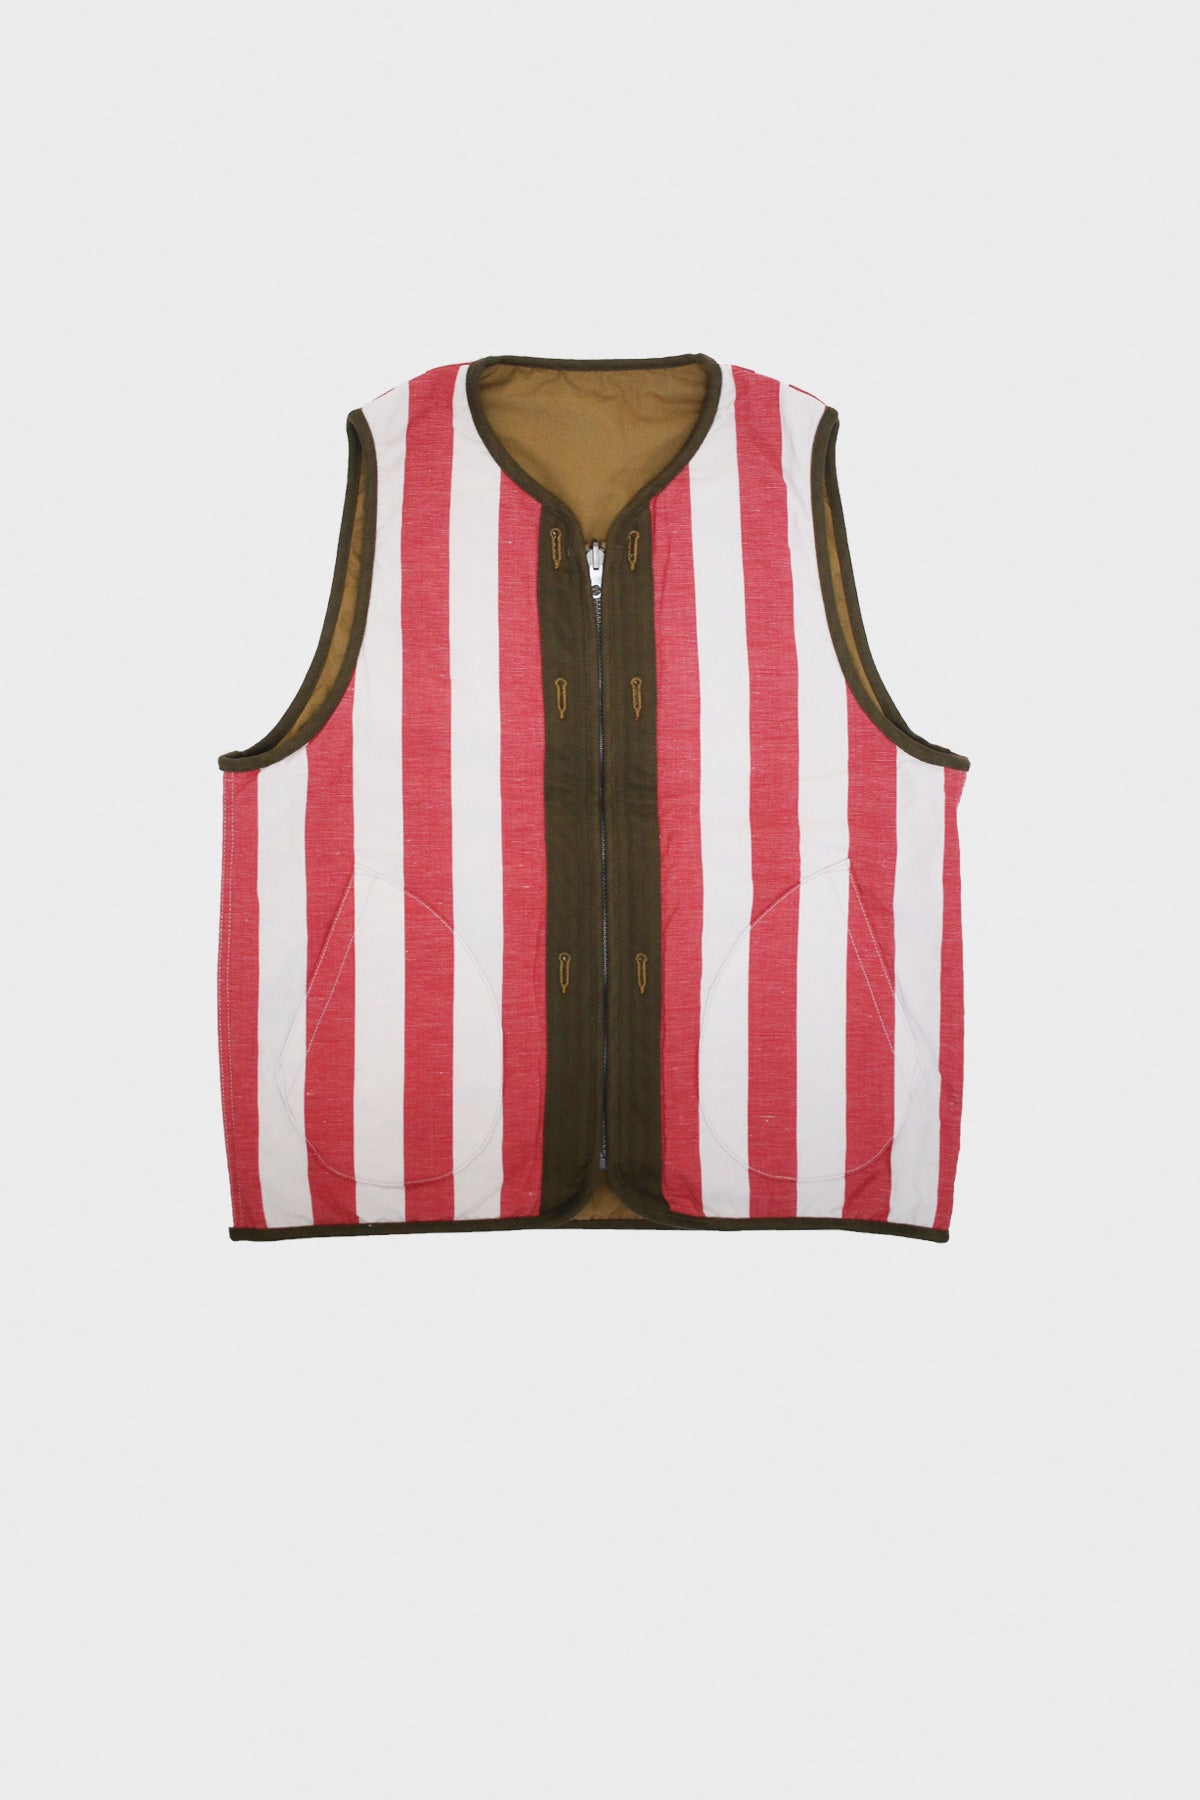 Visvim - Iris Liner Vest - Light Brown - Canoe Club